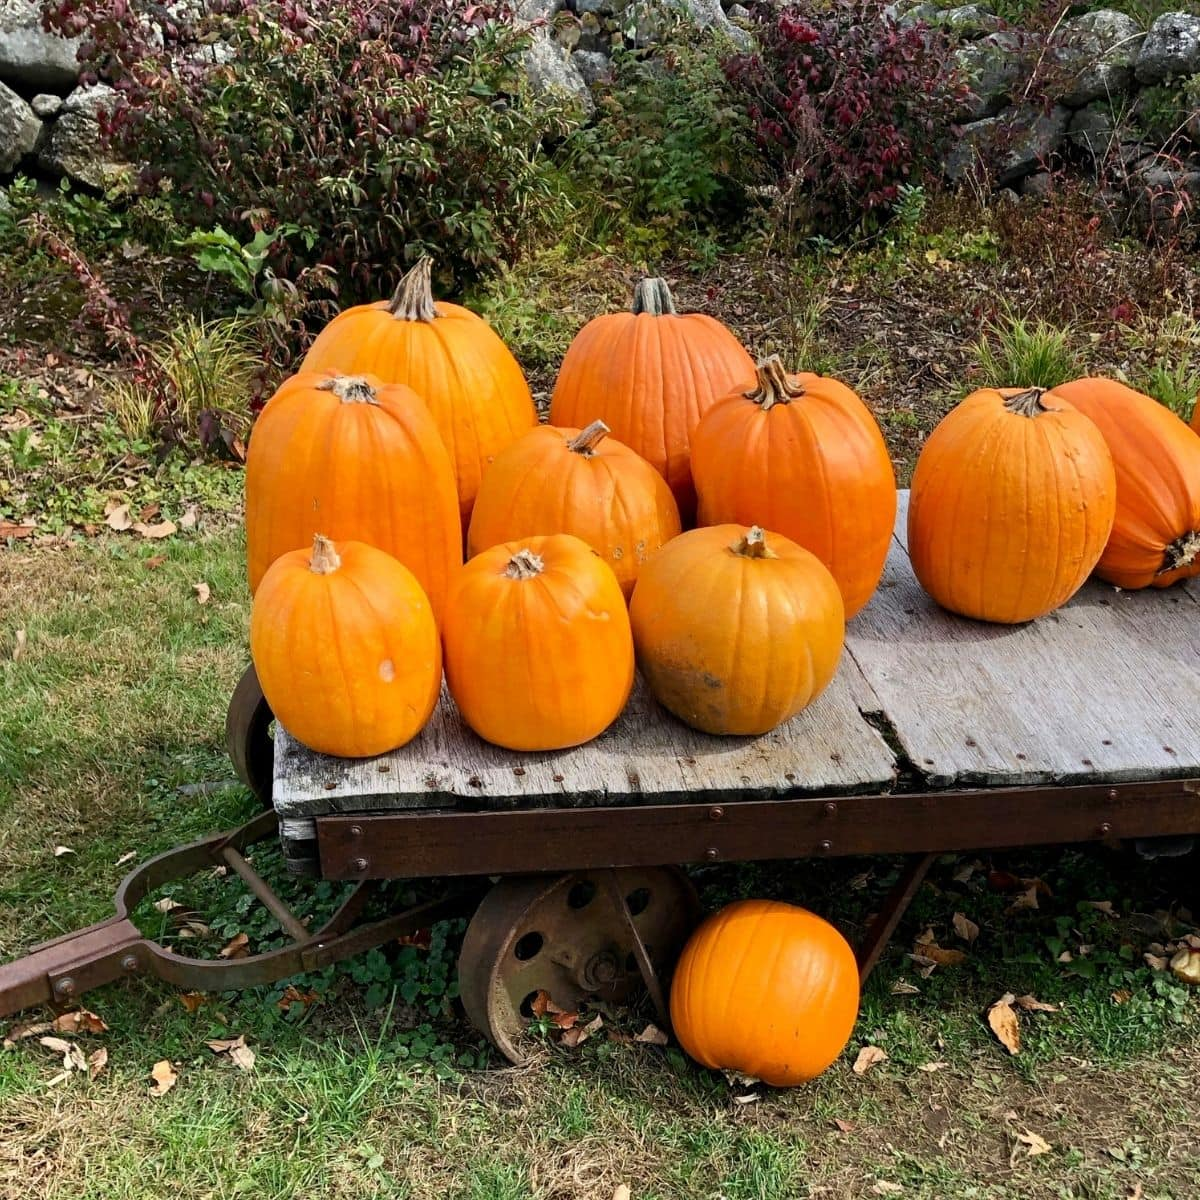 an old wooden cart with big orange pumpkins on it